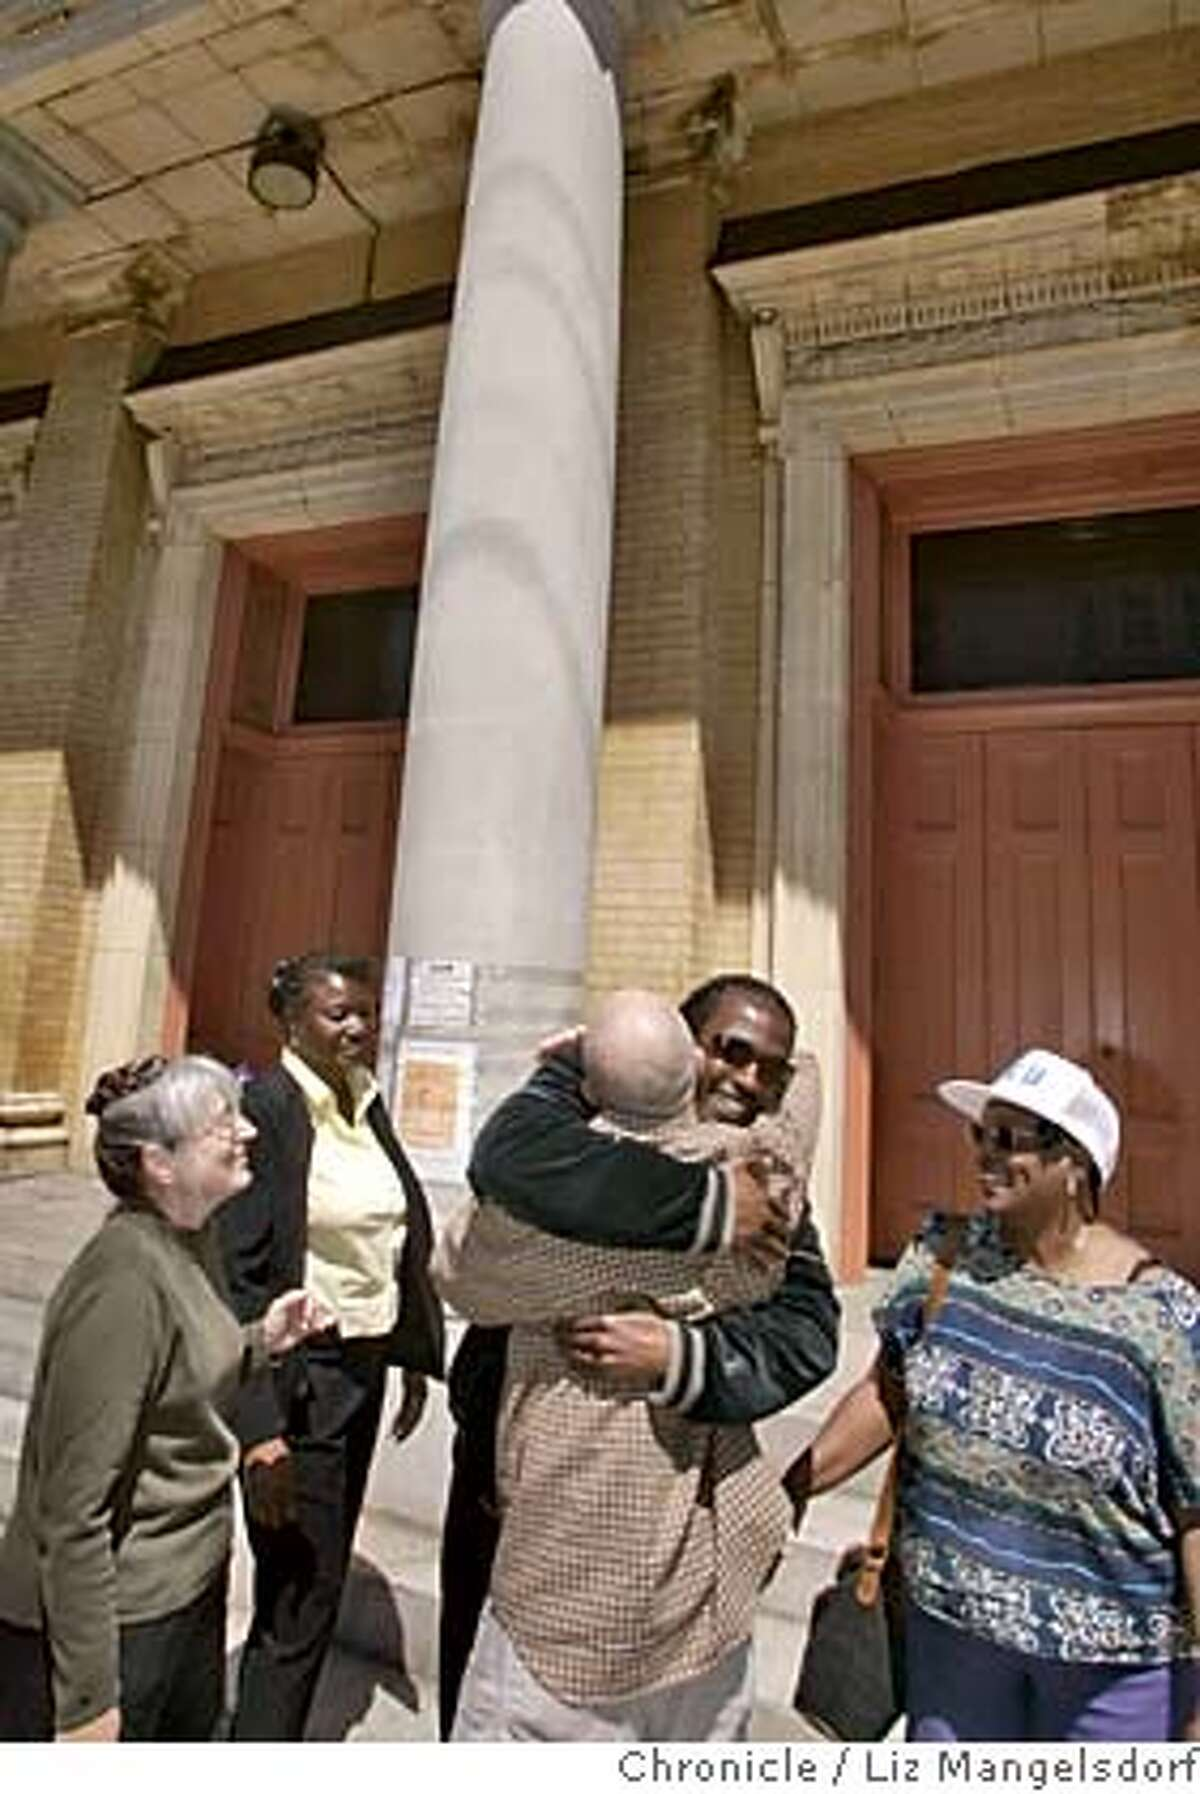 sacredheart088_lm.JPG Event on 7/27/05 in San Francisco. Parishioners greet each other in front of their church, Sacred Heart Church, on Fillmore Street. Folks from Sacred Heart church gather in front of the church on Fillmore Street after it was purchased and hopefully will be reopened. Liz Mangelsdorf / The Chronicle MANDATORY CREDIT FOR PHOTOG AND SF CHRONICLE/ -MAGS OUT